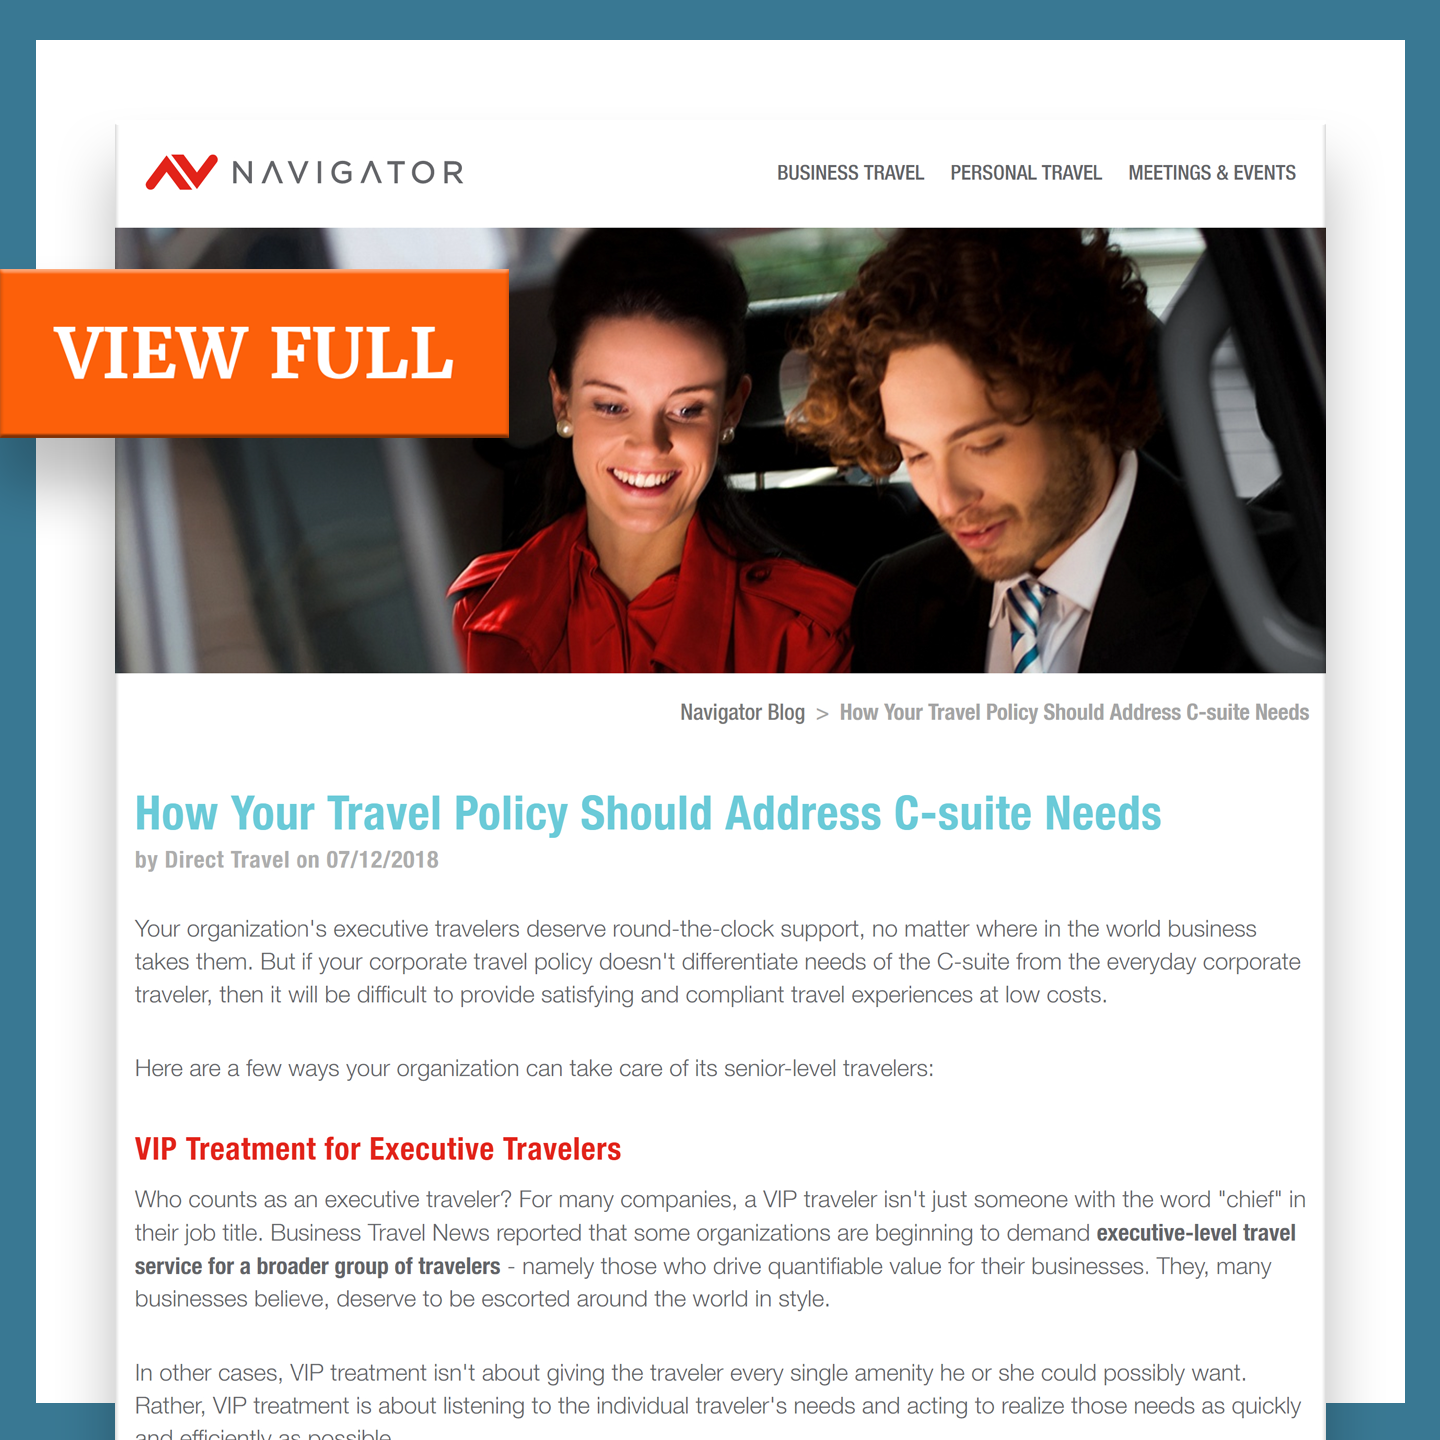 A travel management article example by B2B content writer Alexander Santo.